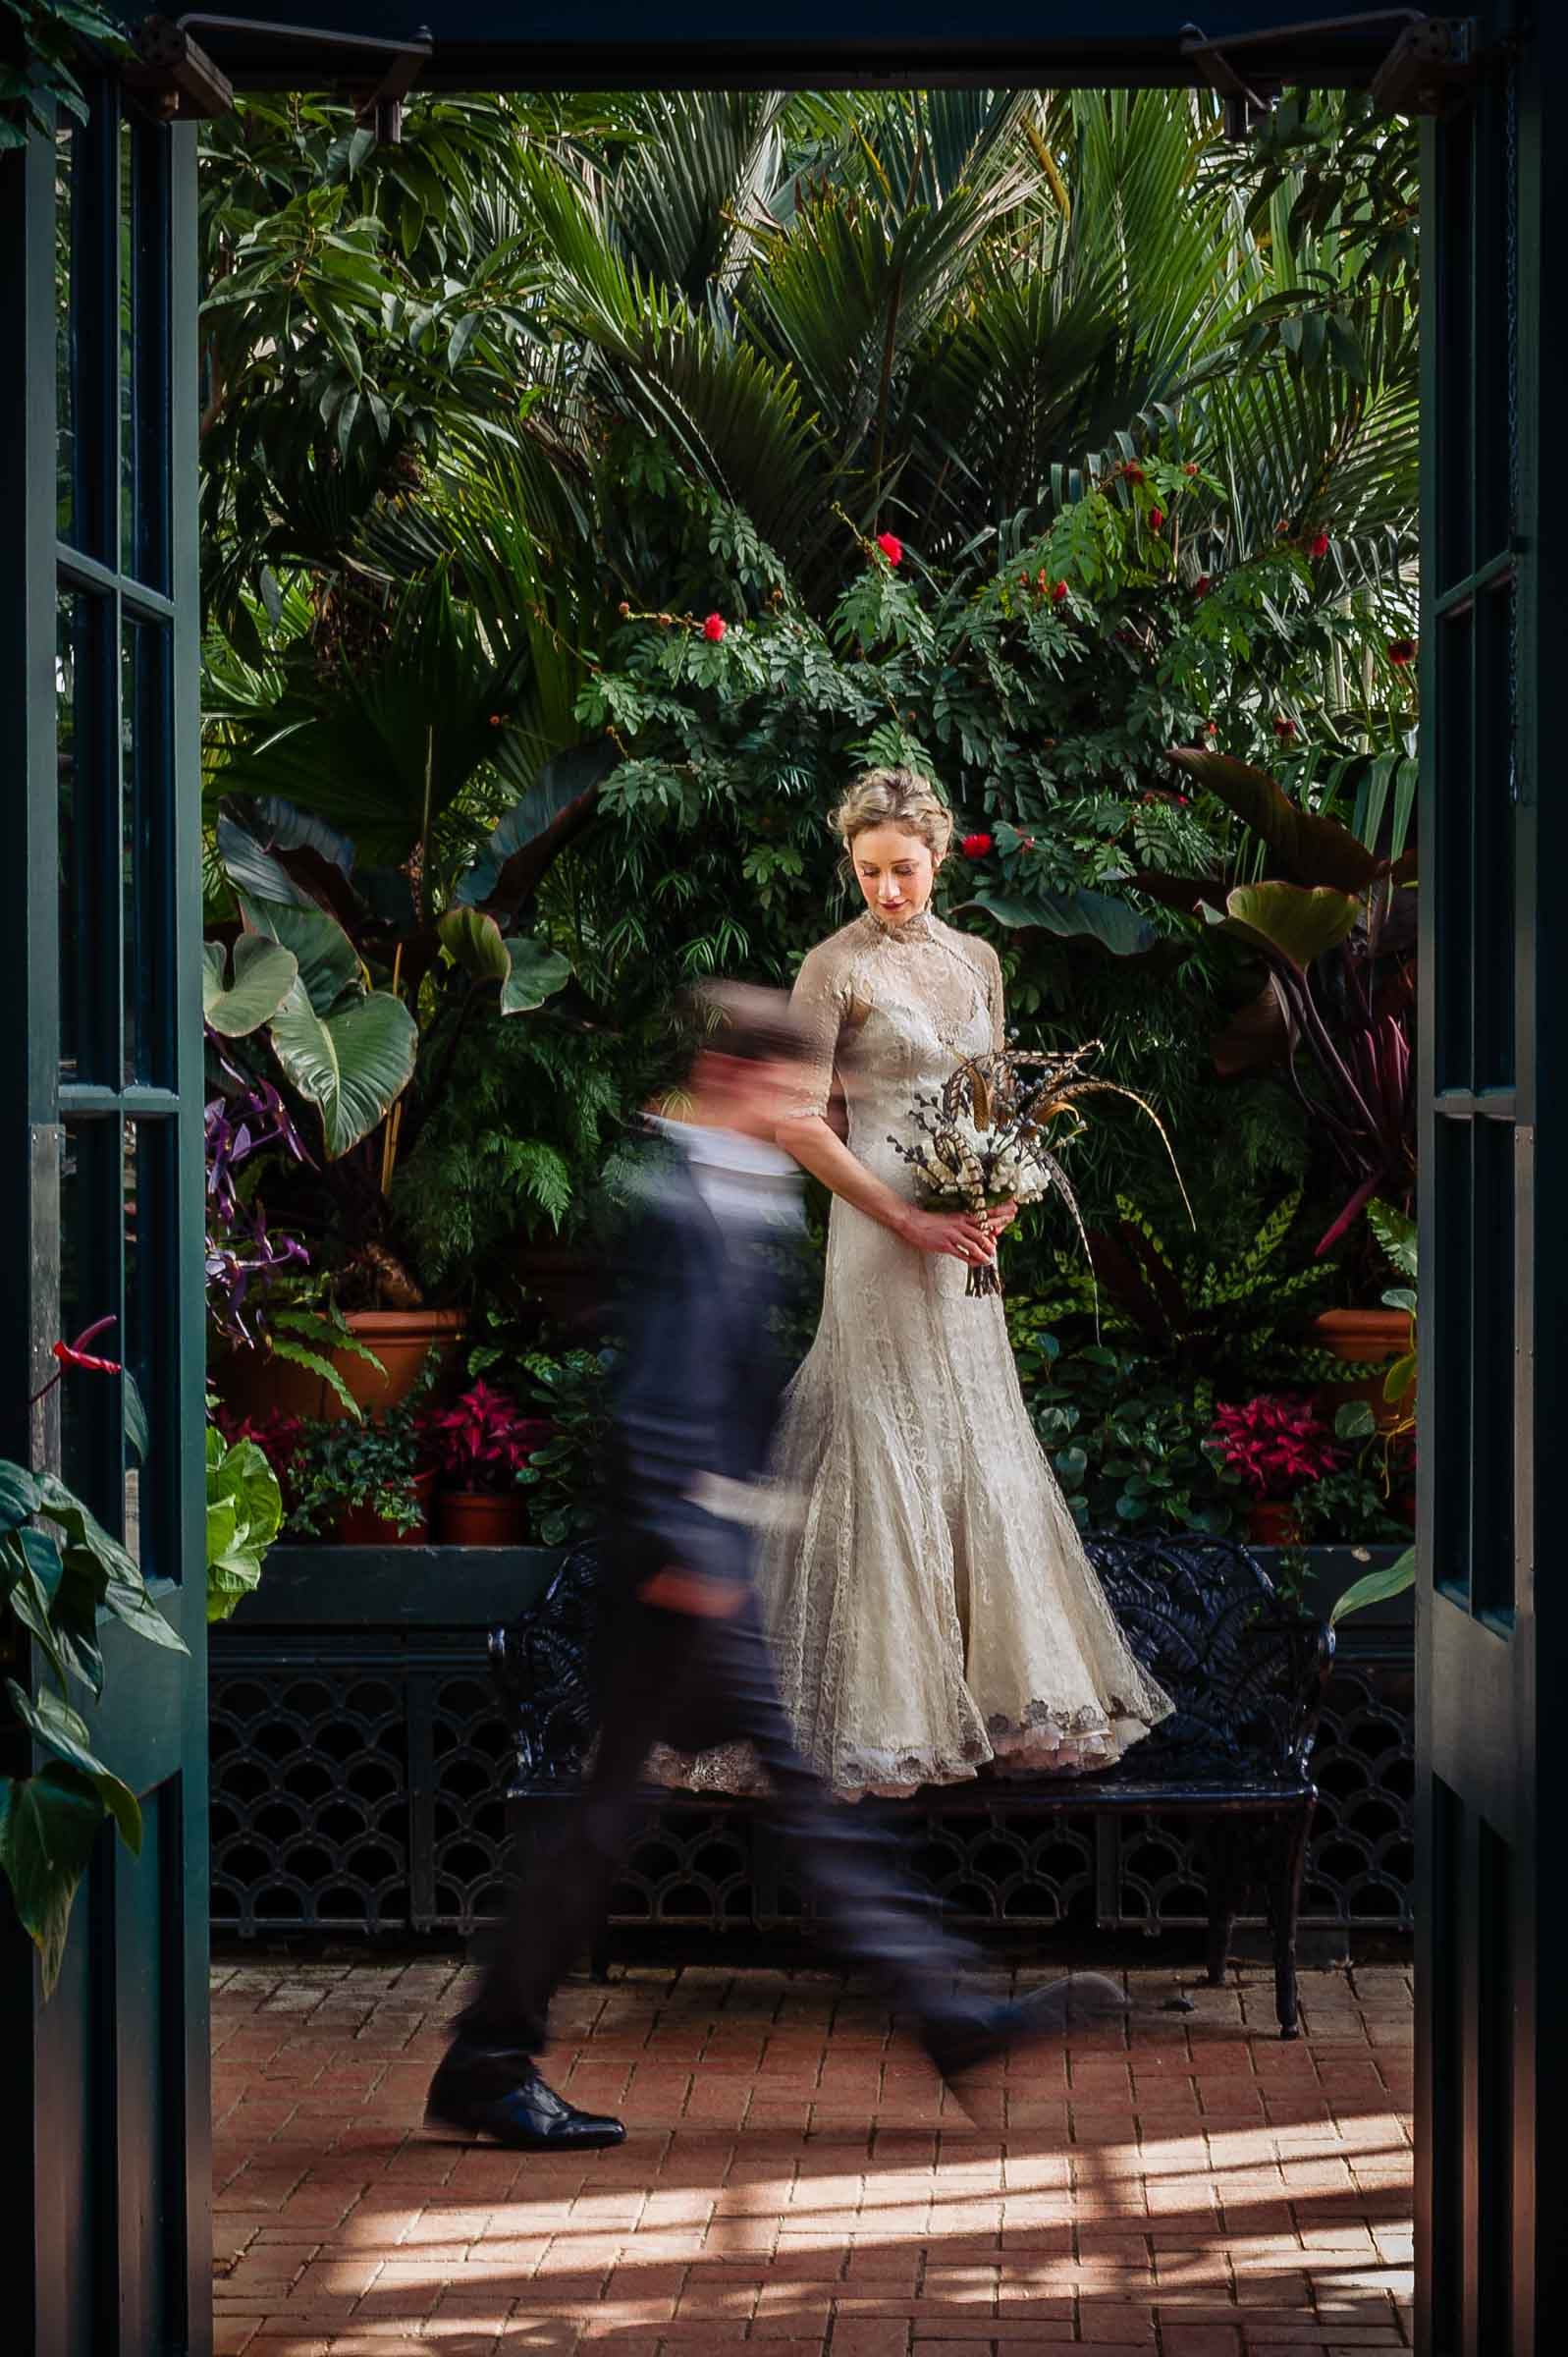 50 Best Wedding Photo Concepts of the Decade - photo by Viridian Images Photography